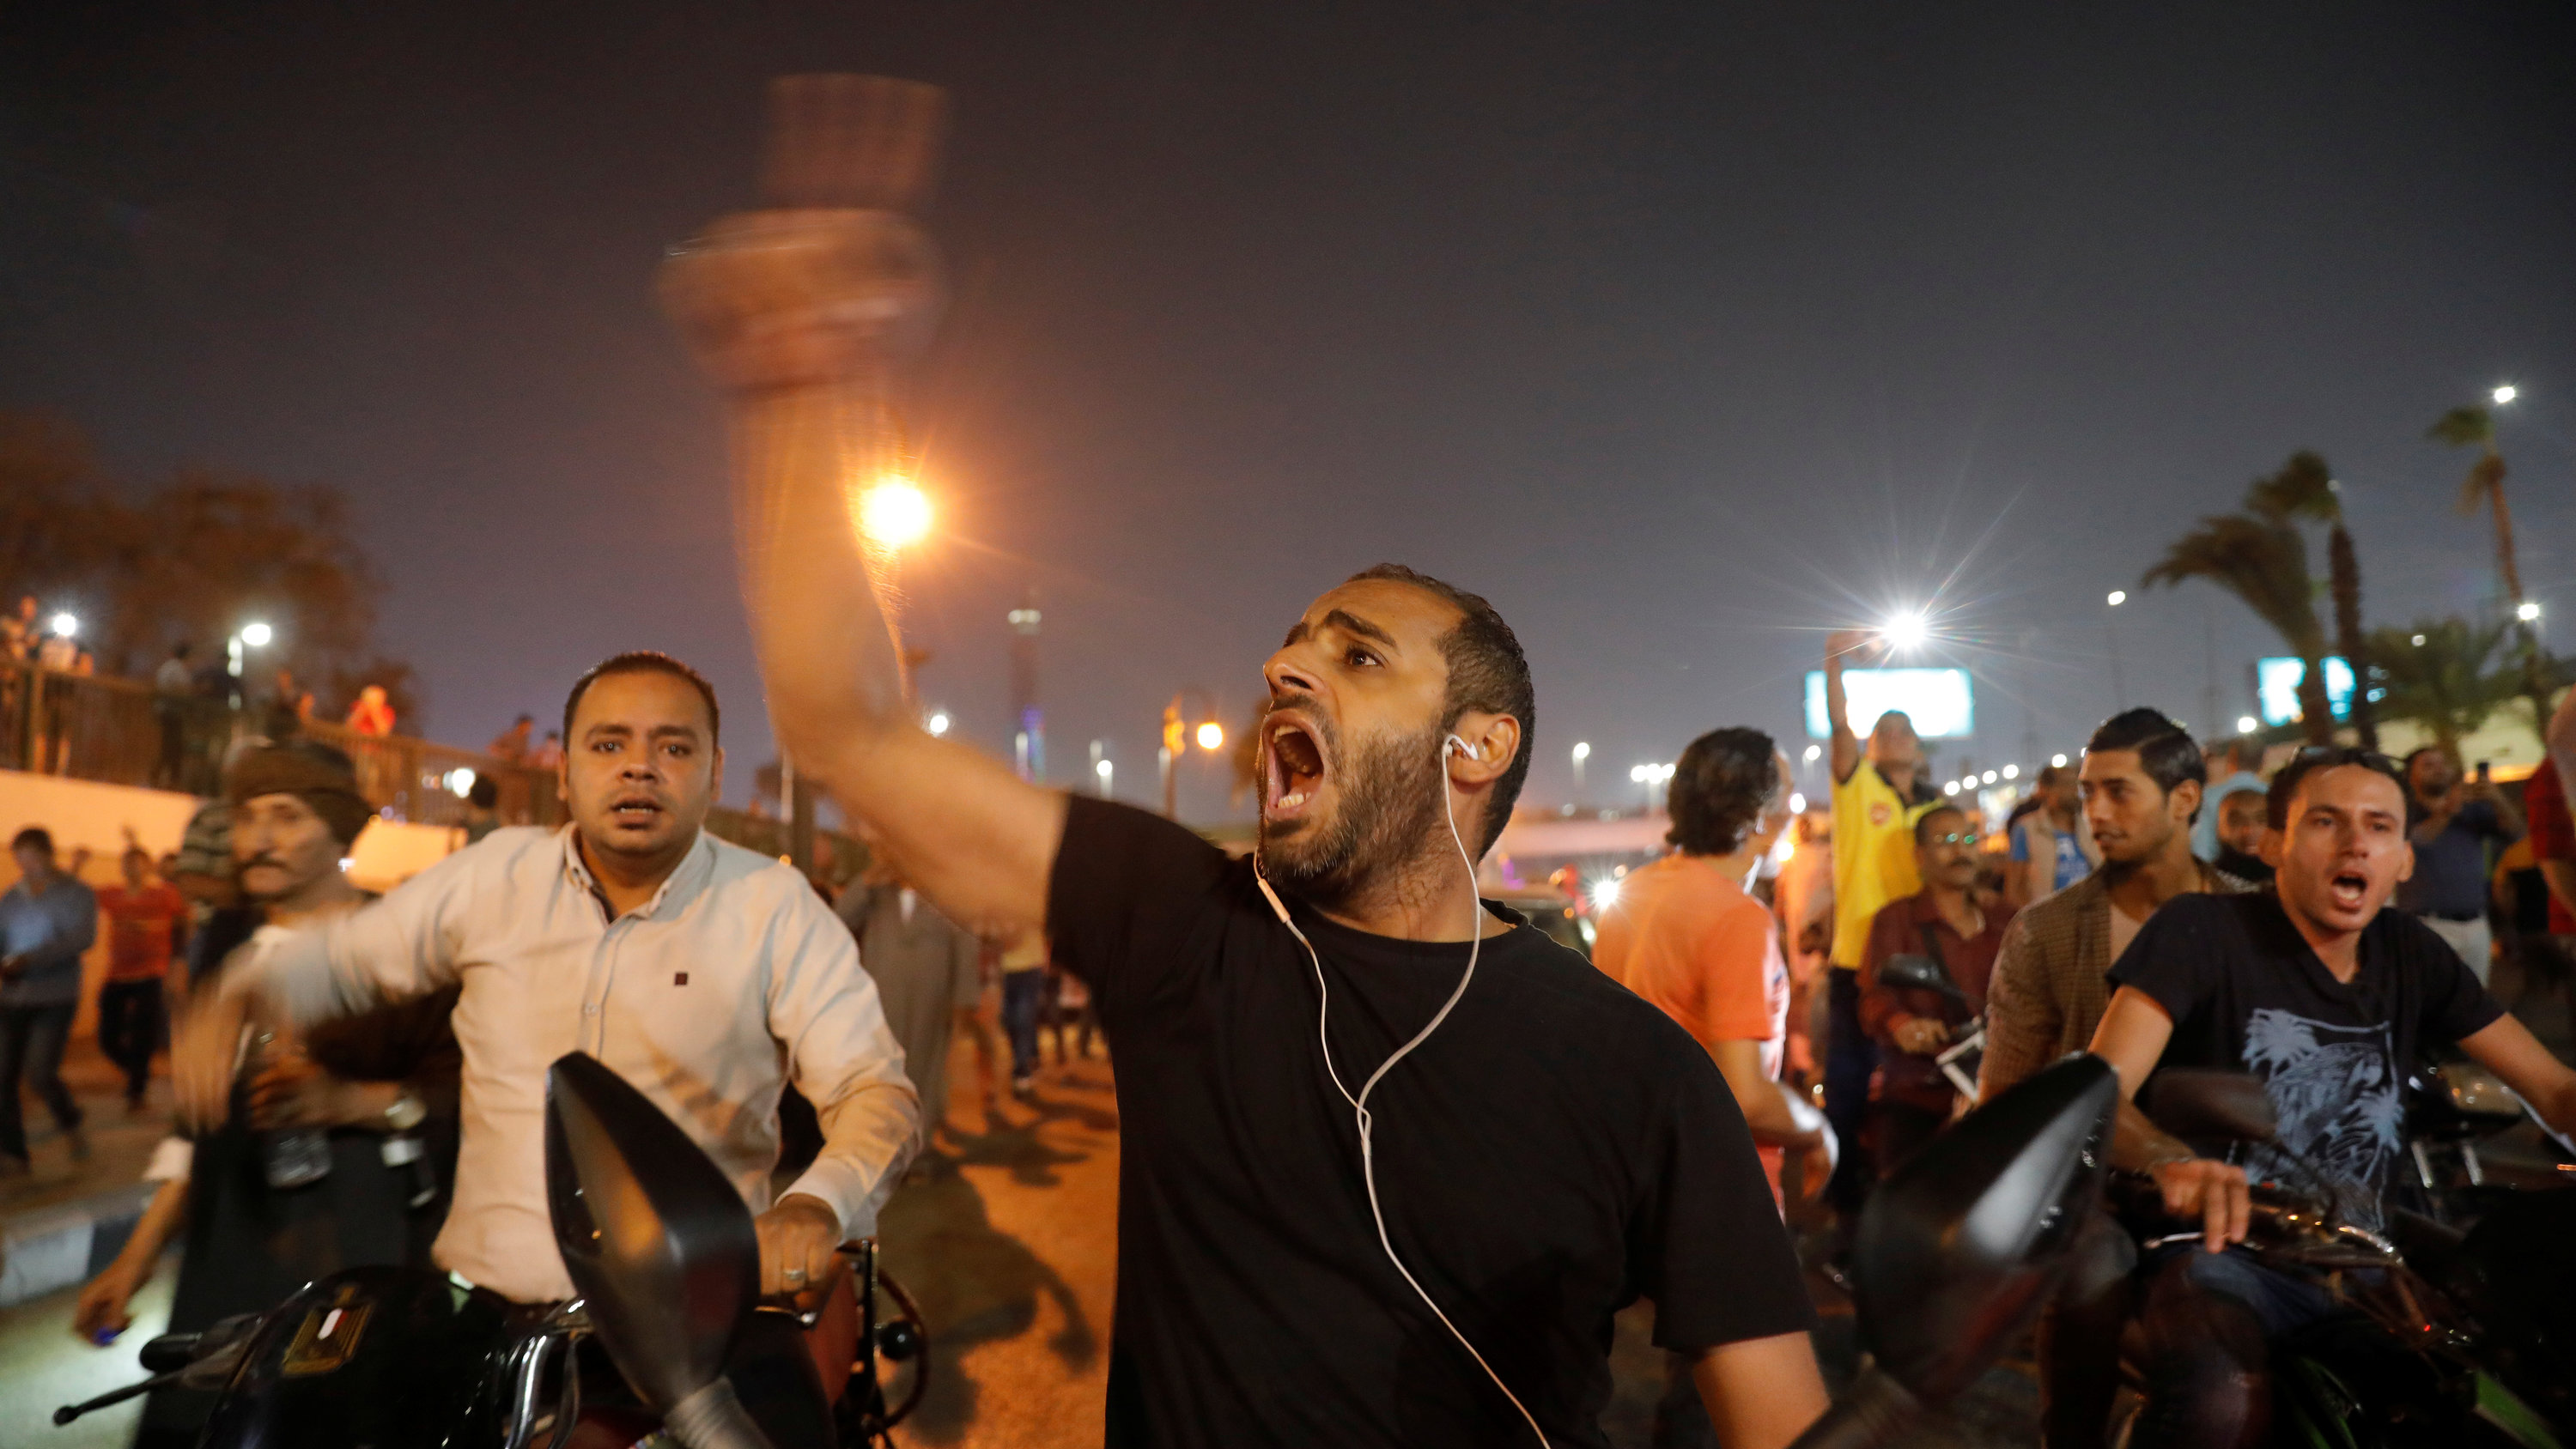 Egyptians Overcome Fear for the Sake of Hope